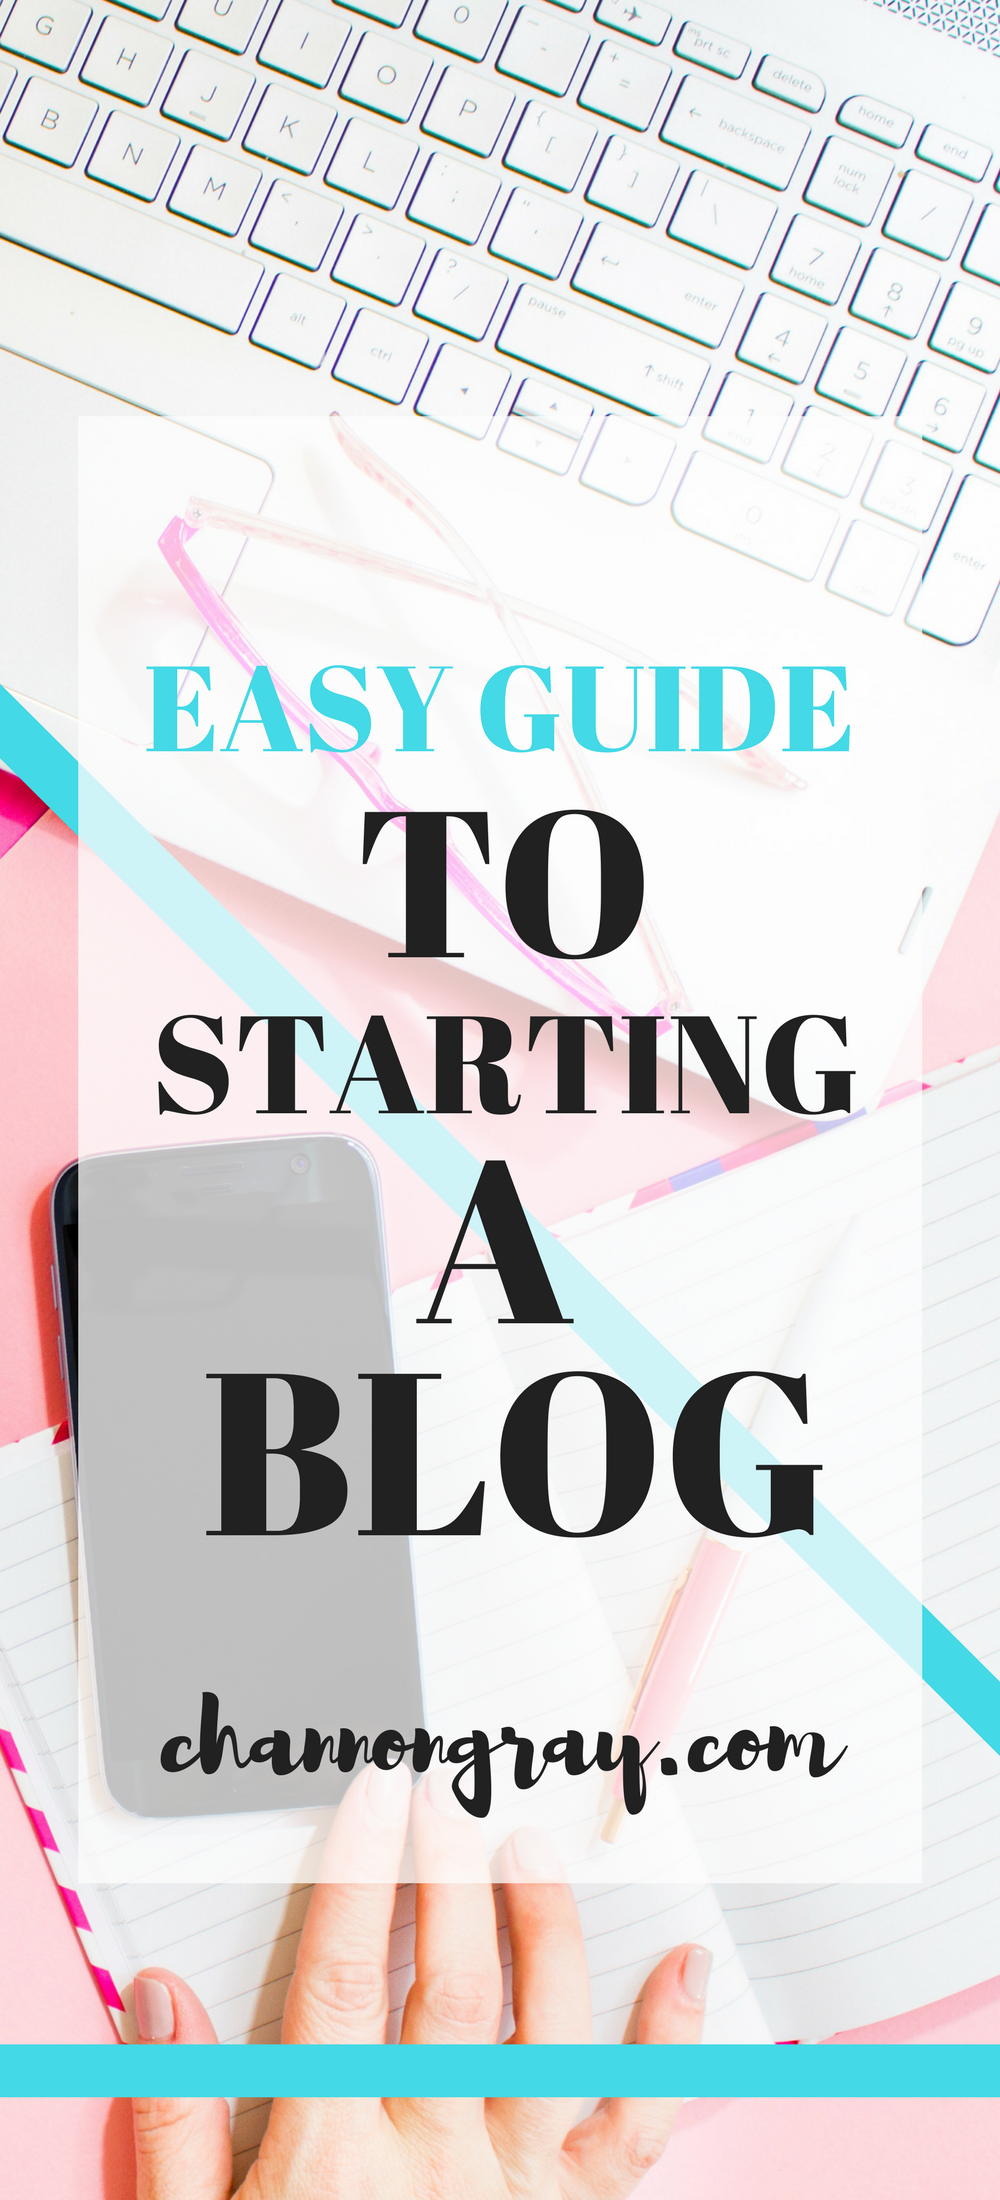 Easy Guide to Starting a Blog - Check Out the Blog Post. I have put together an easy guide to creating your own blog/space on the internet/writing space to share content and ideas. This is part of my blogging advice series featuring information on social media, such as Pinterest, WordPress, etc. It is ideal for beginners. #Bloggers #BlogIdeas // heythereChannon